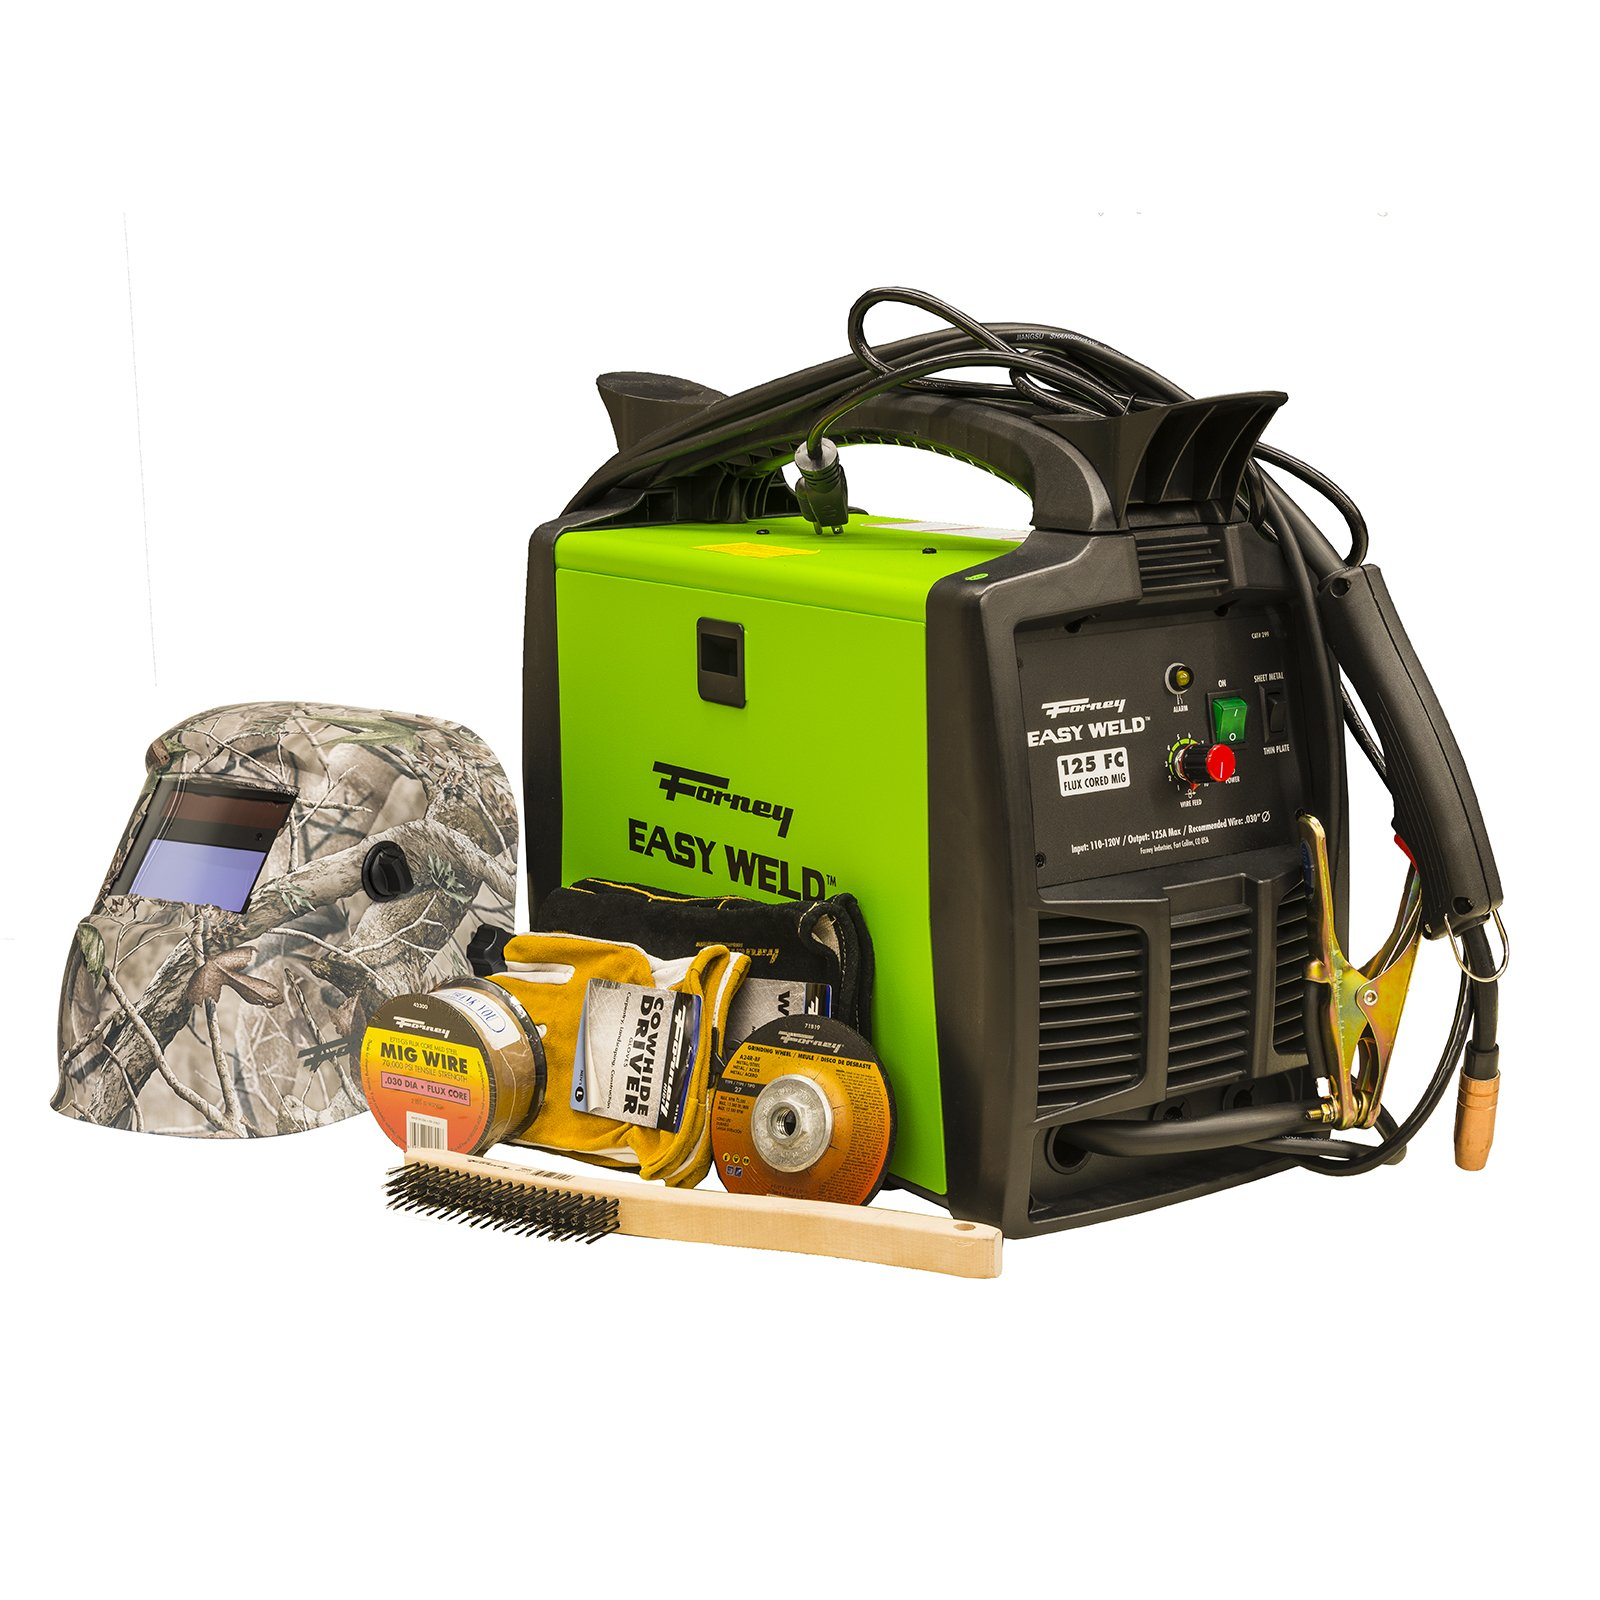 Forney Easy Weld 29901 125 FC MIG Welder Start-Up Kit by Forney